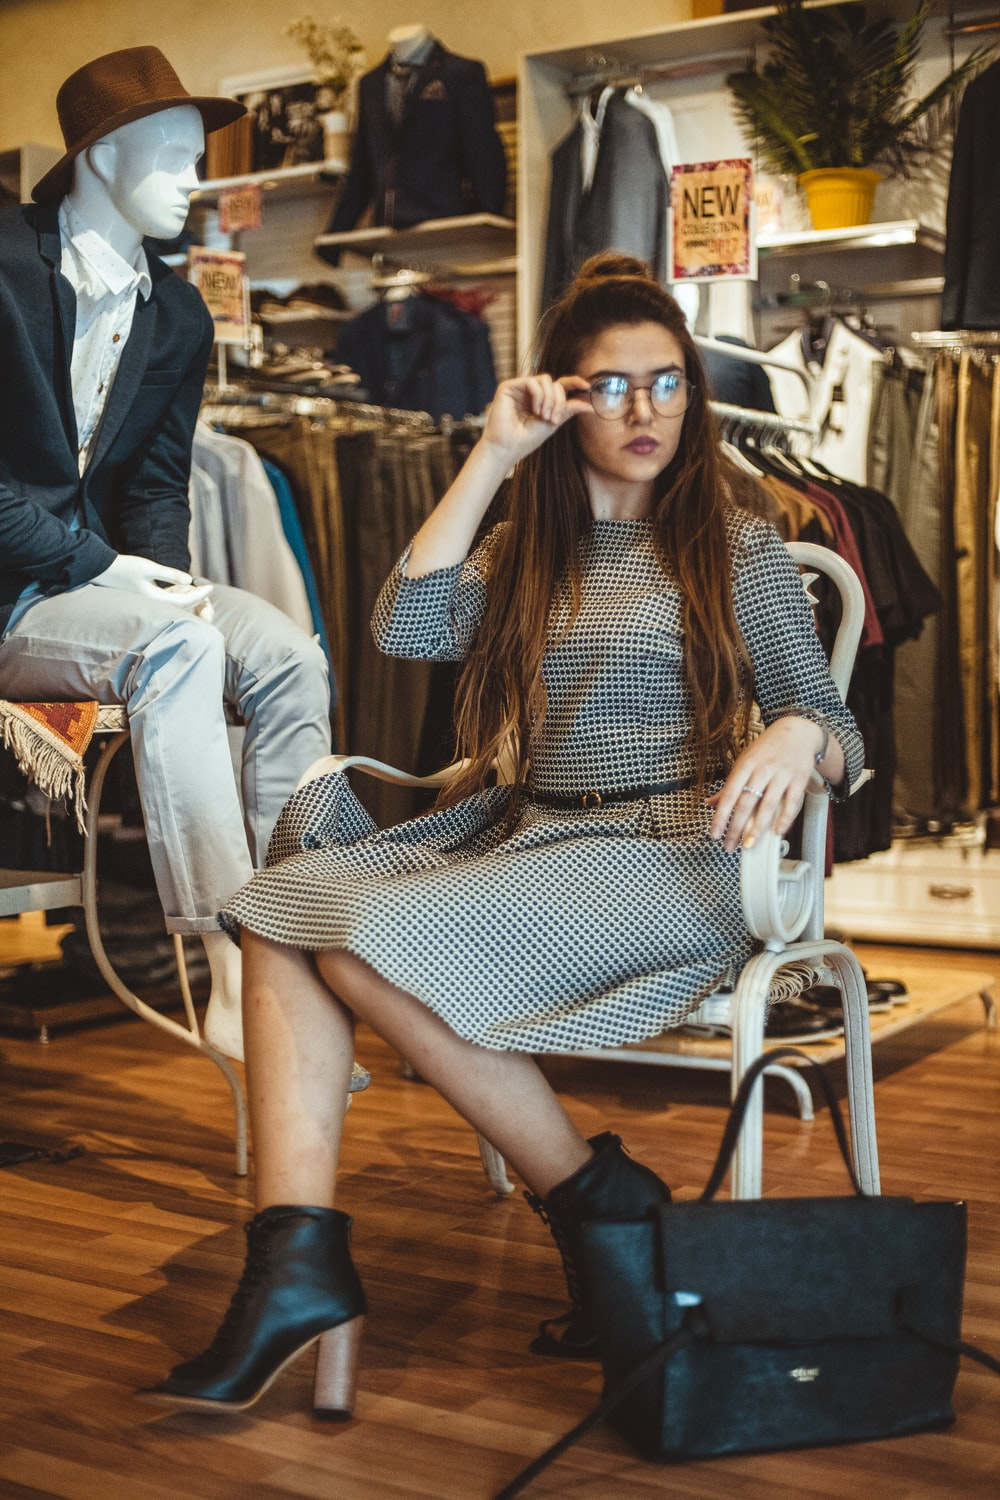 woman sitting on chair while holding her glasses